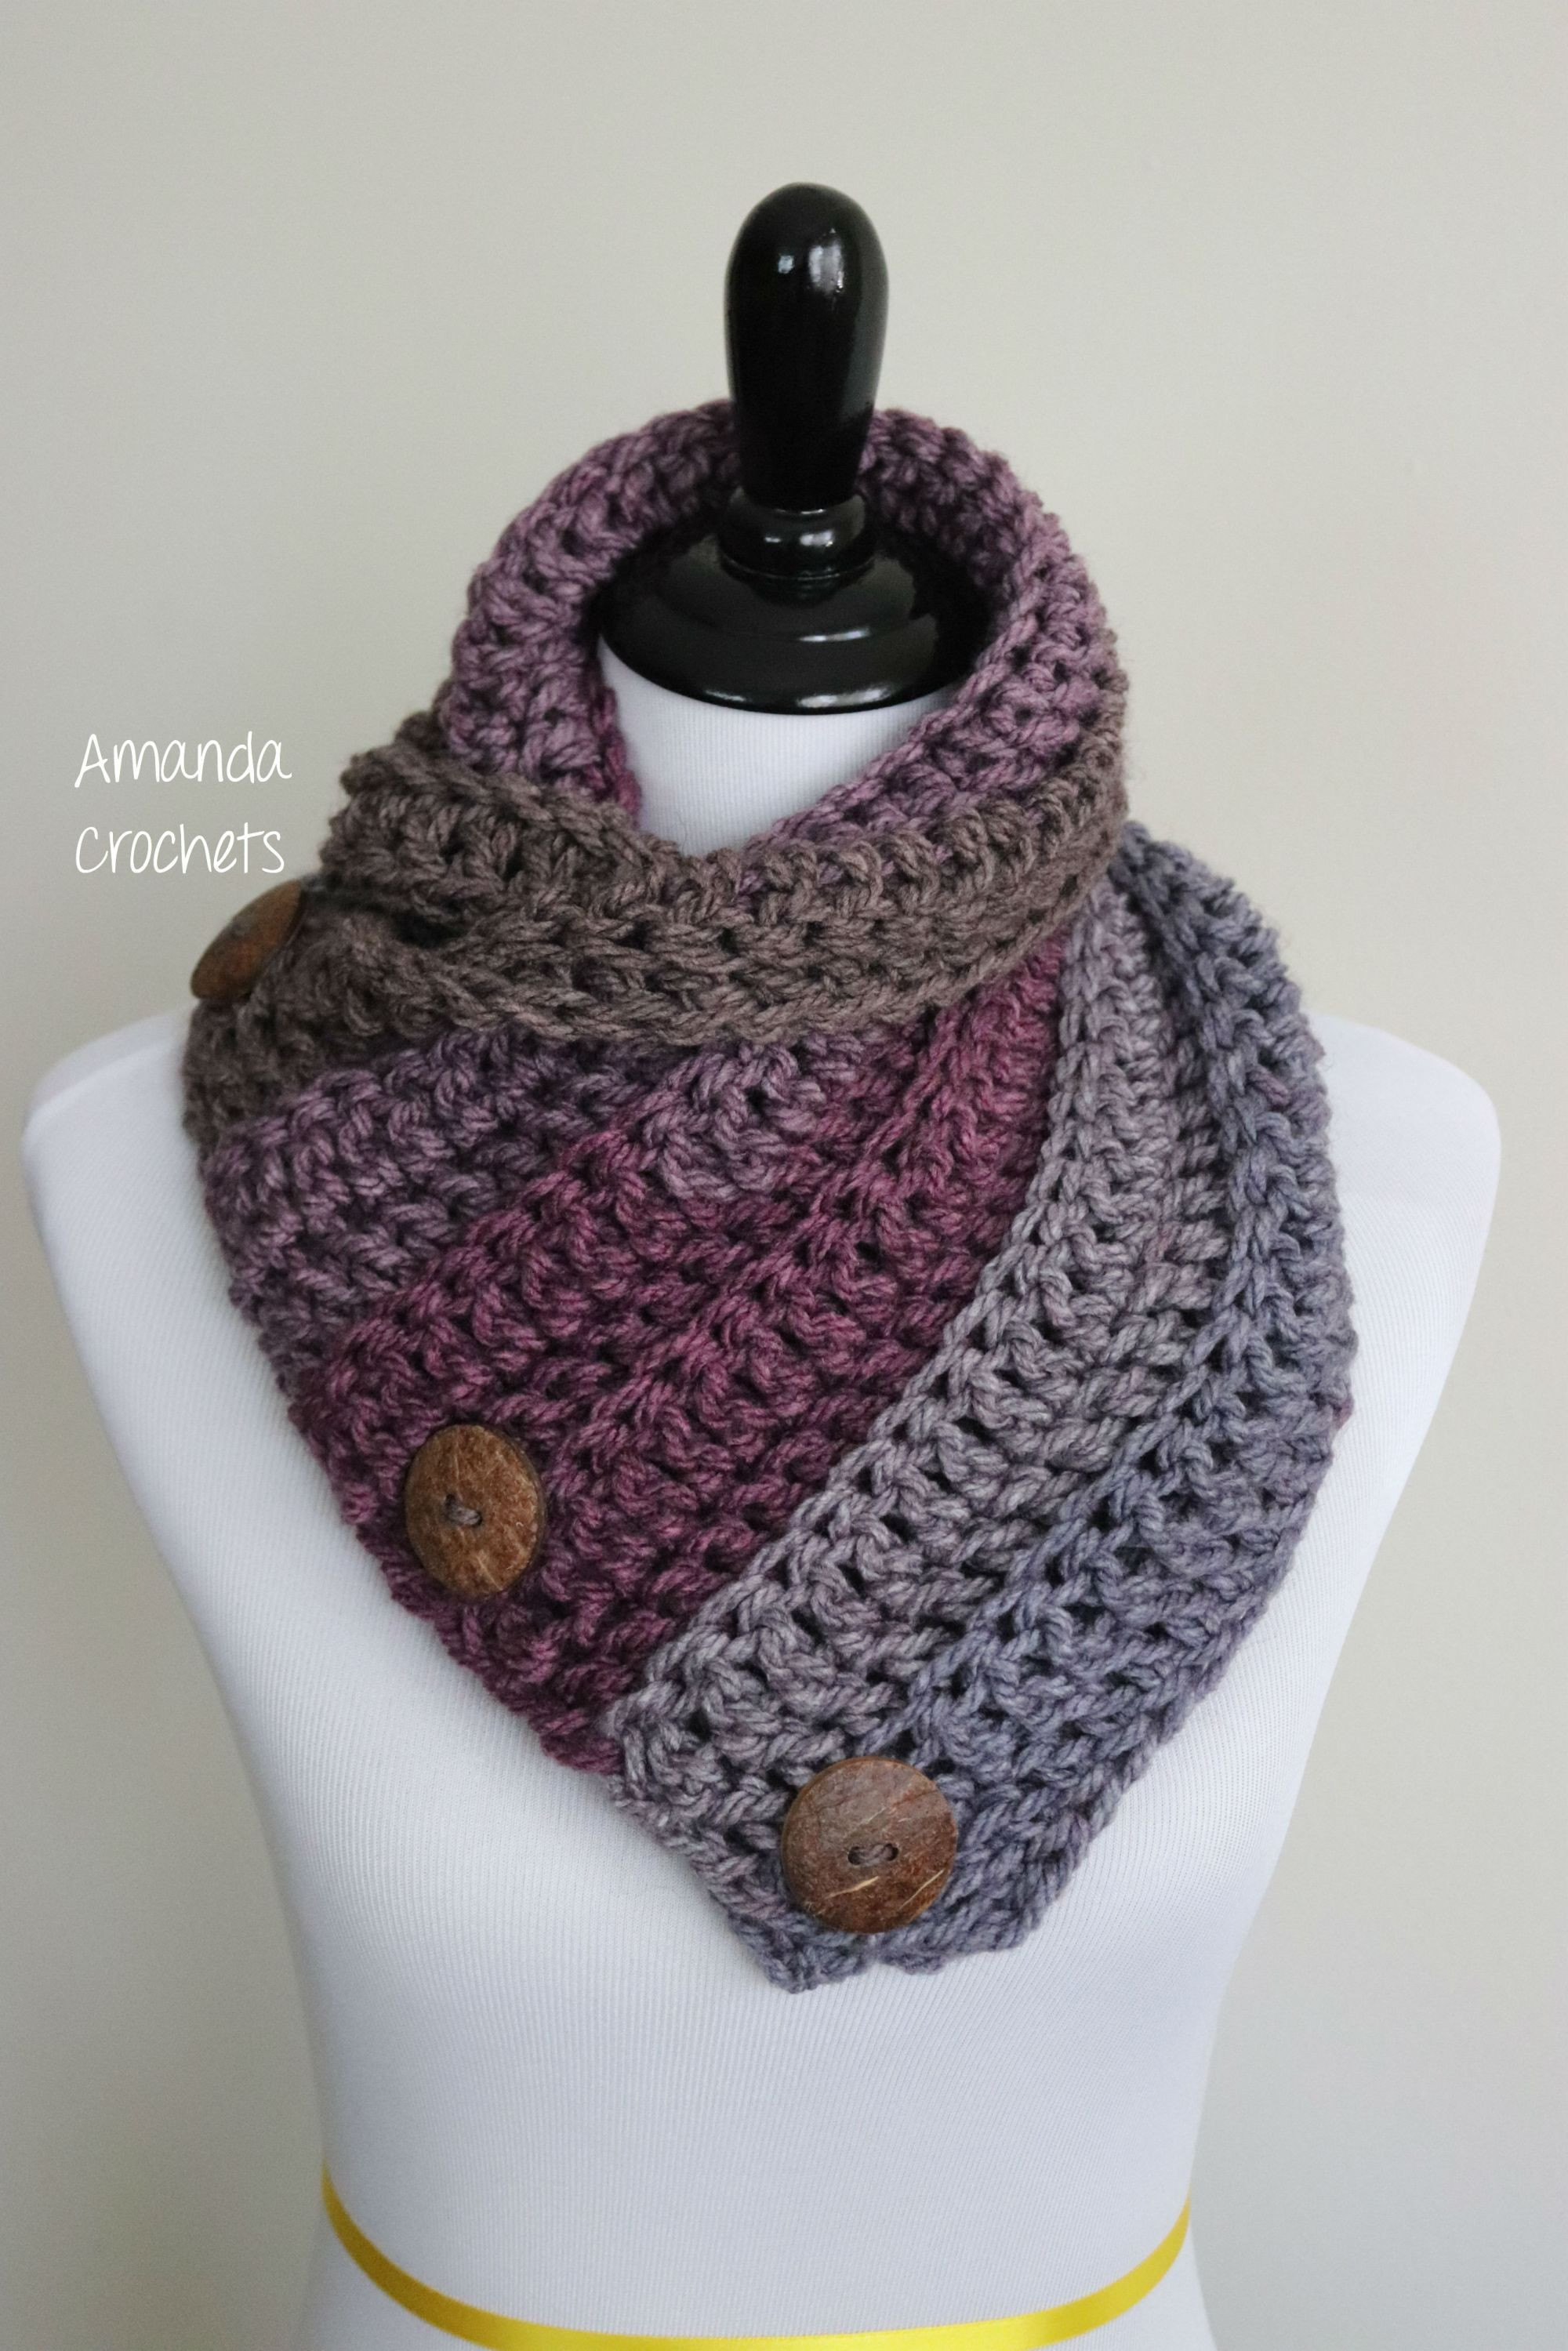 3 button cowl crochet scarves pinterest crochet crochet today im going to share my 3 button cowl pattern this is a simple yet beautiful cowl pattern using caron tea cake yarn this is a perfect winter accessory bankloansurffo Gallery